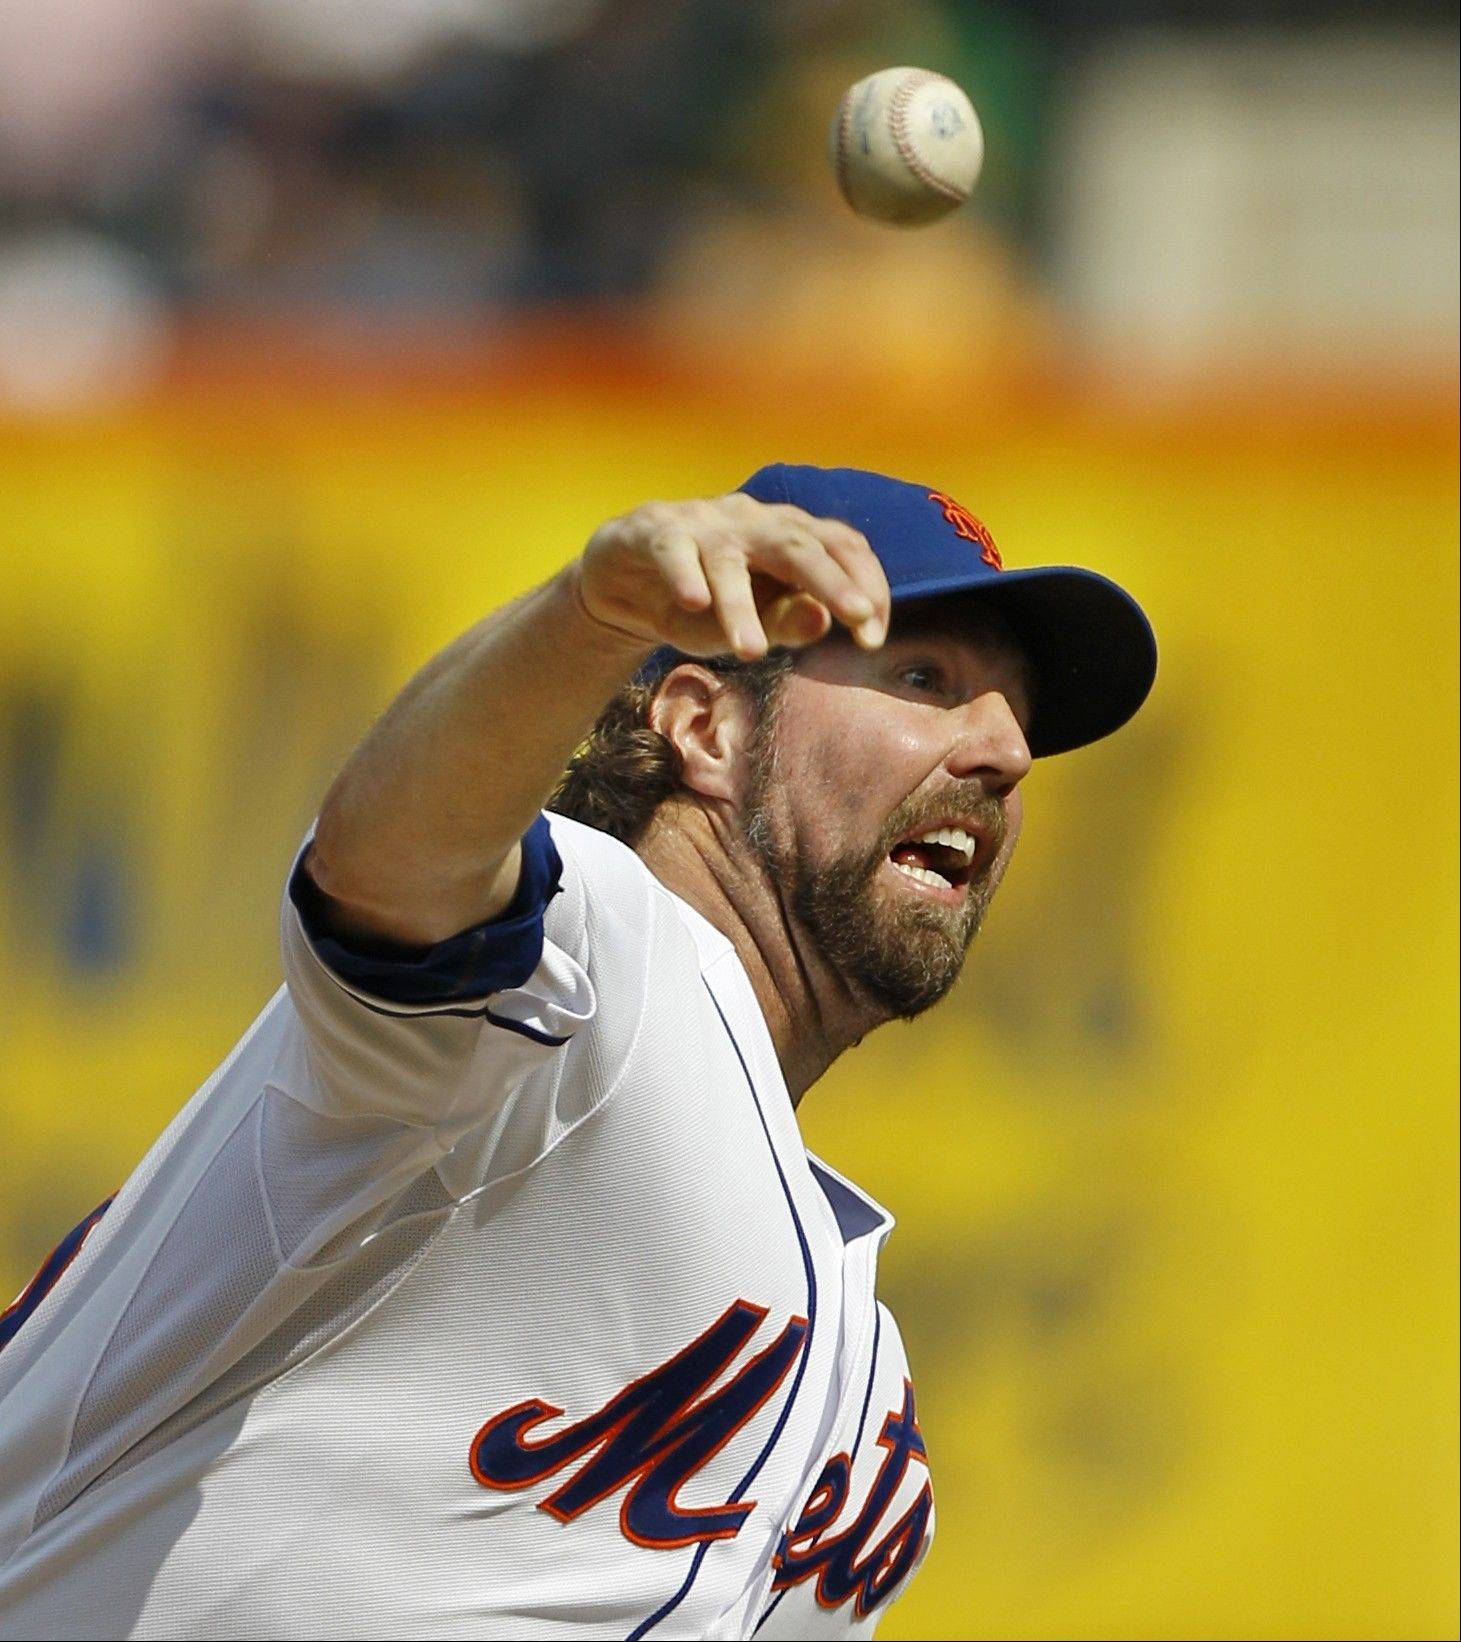 Mets starting pitcher R.A. Dickey tied his career-high with 13 strikeouts in Thursday's victory over the Pirates in New York.